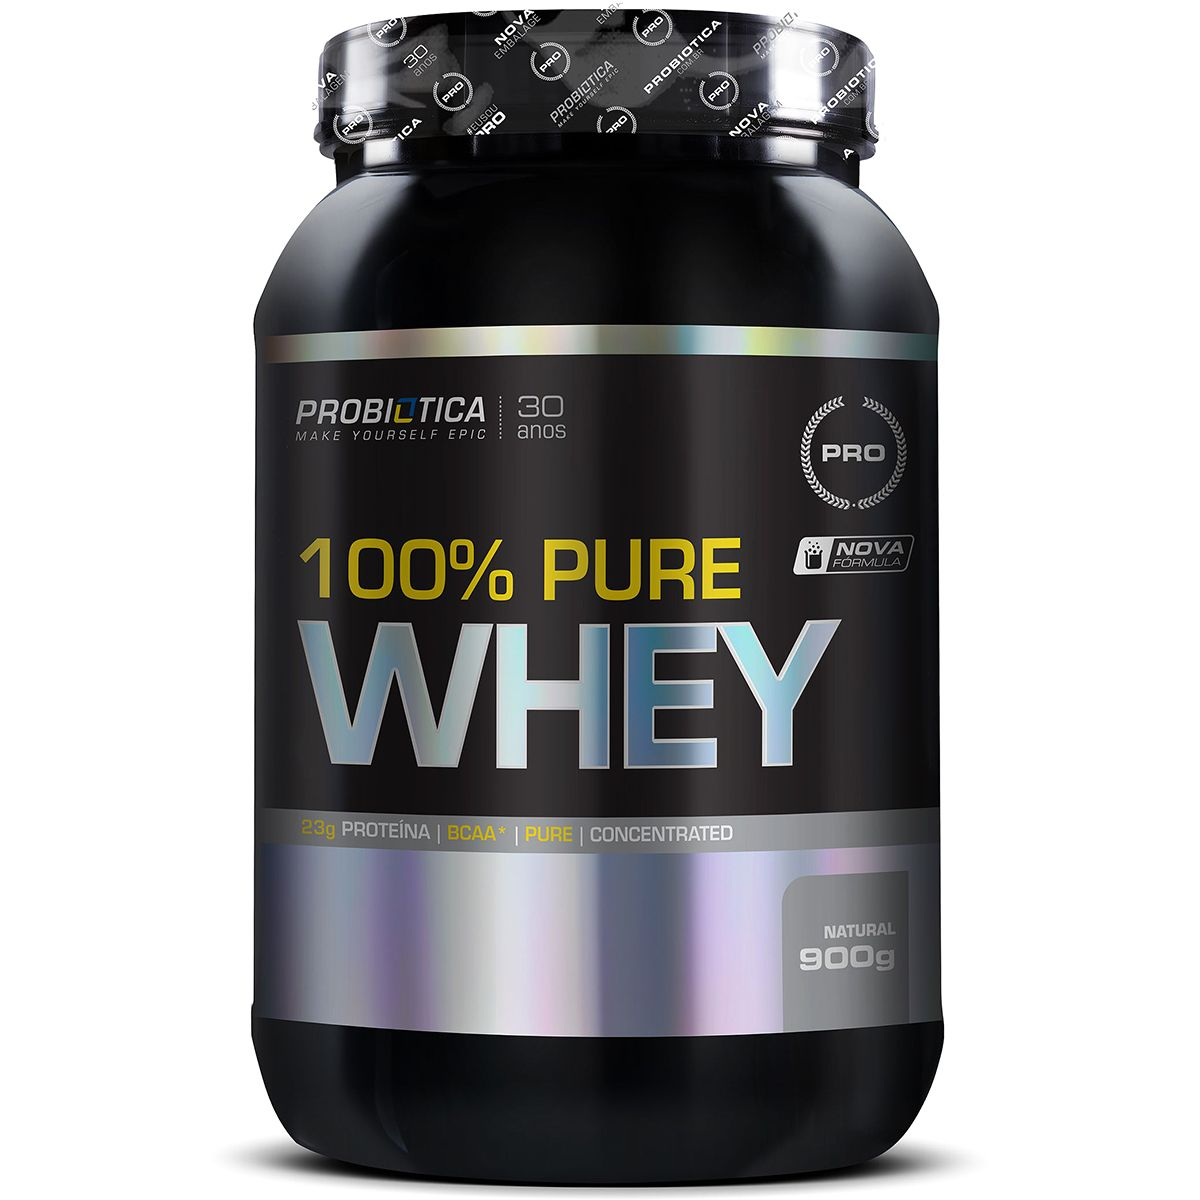 100% Pure Whey 900g - Chocolate - Probiótica